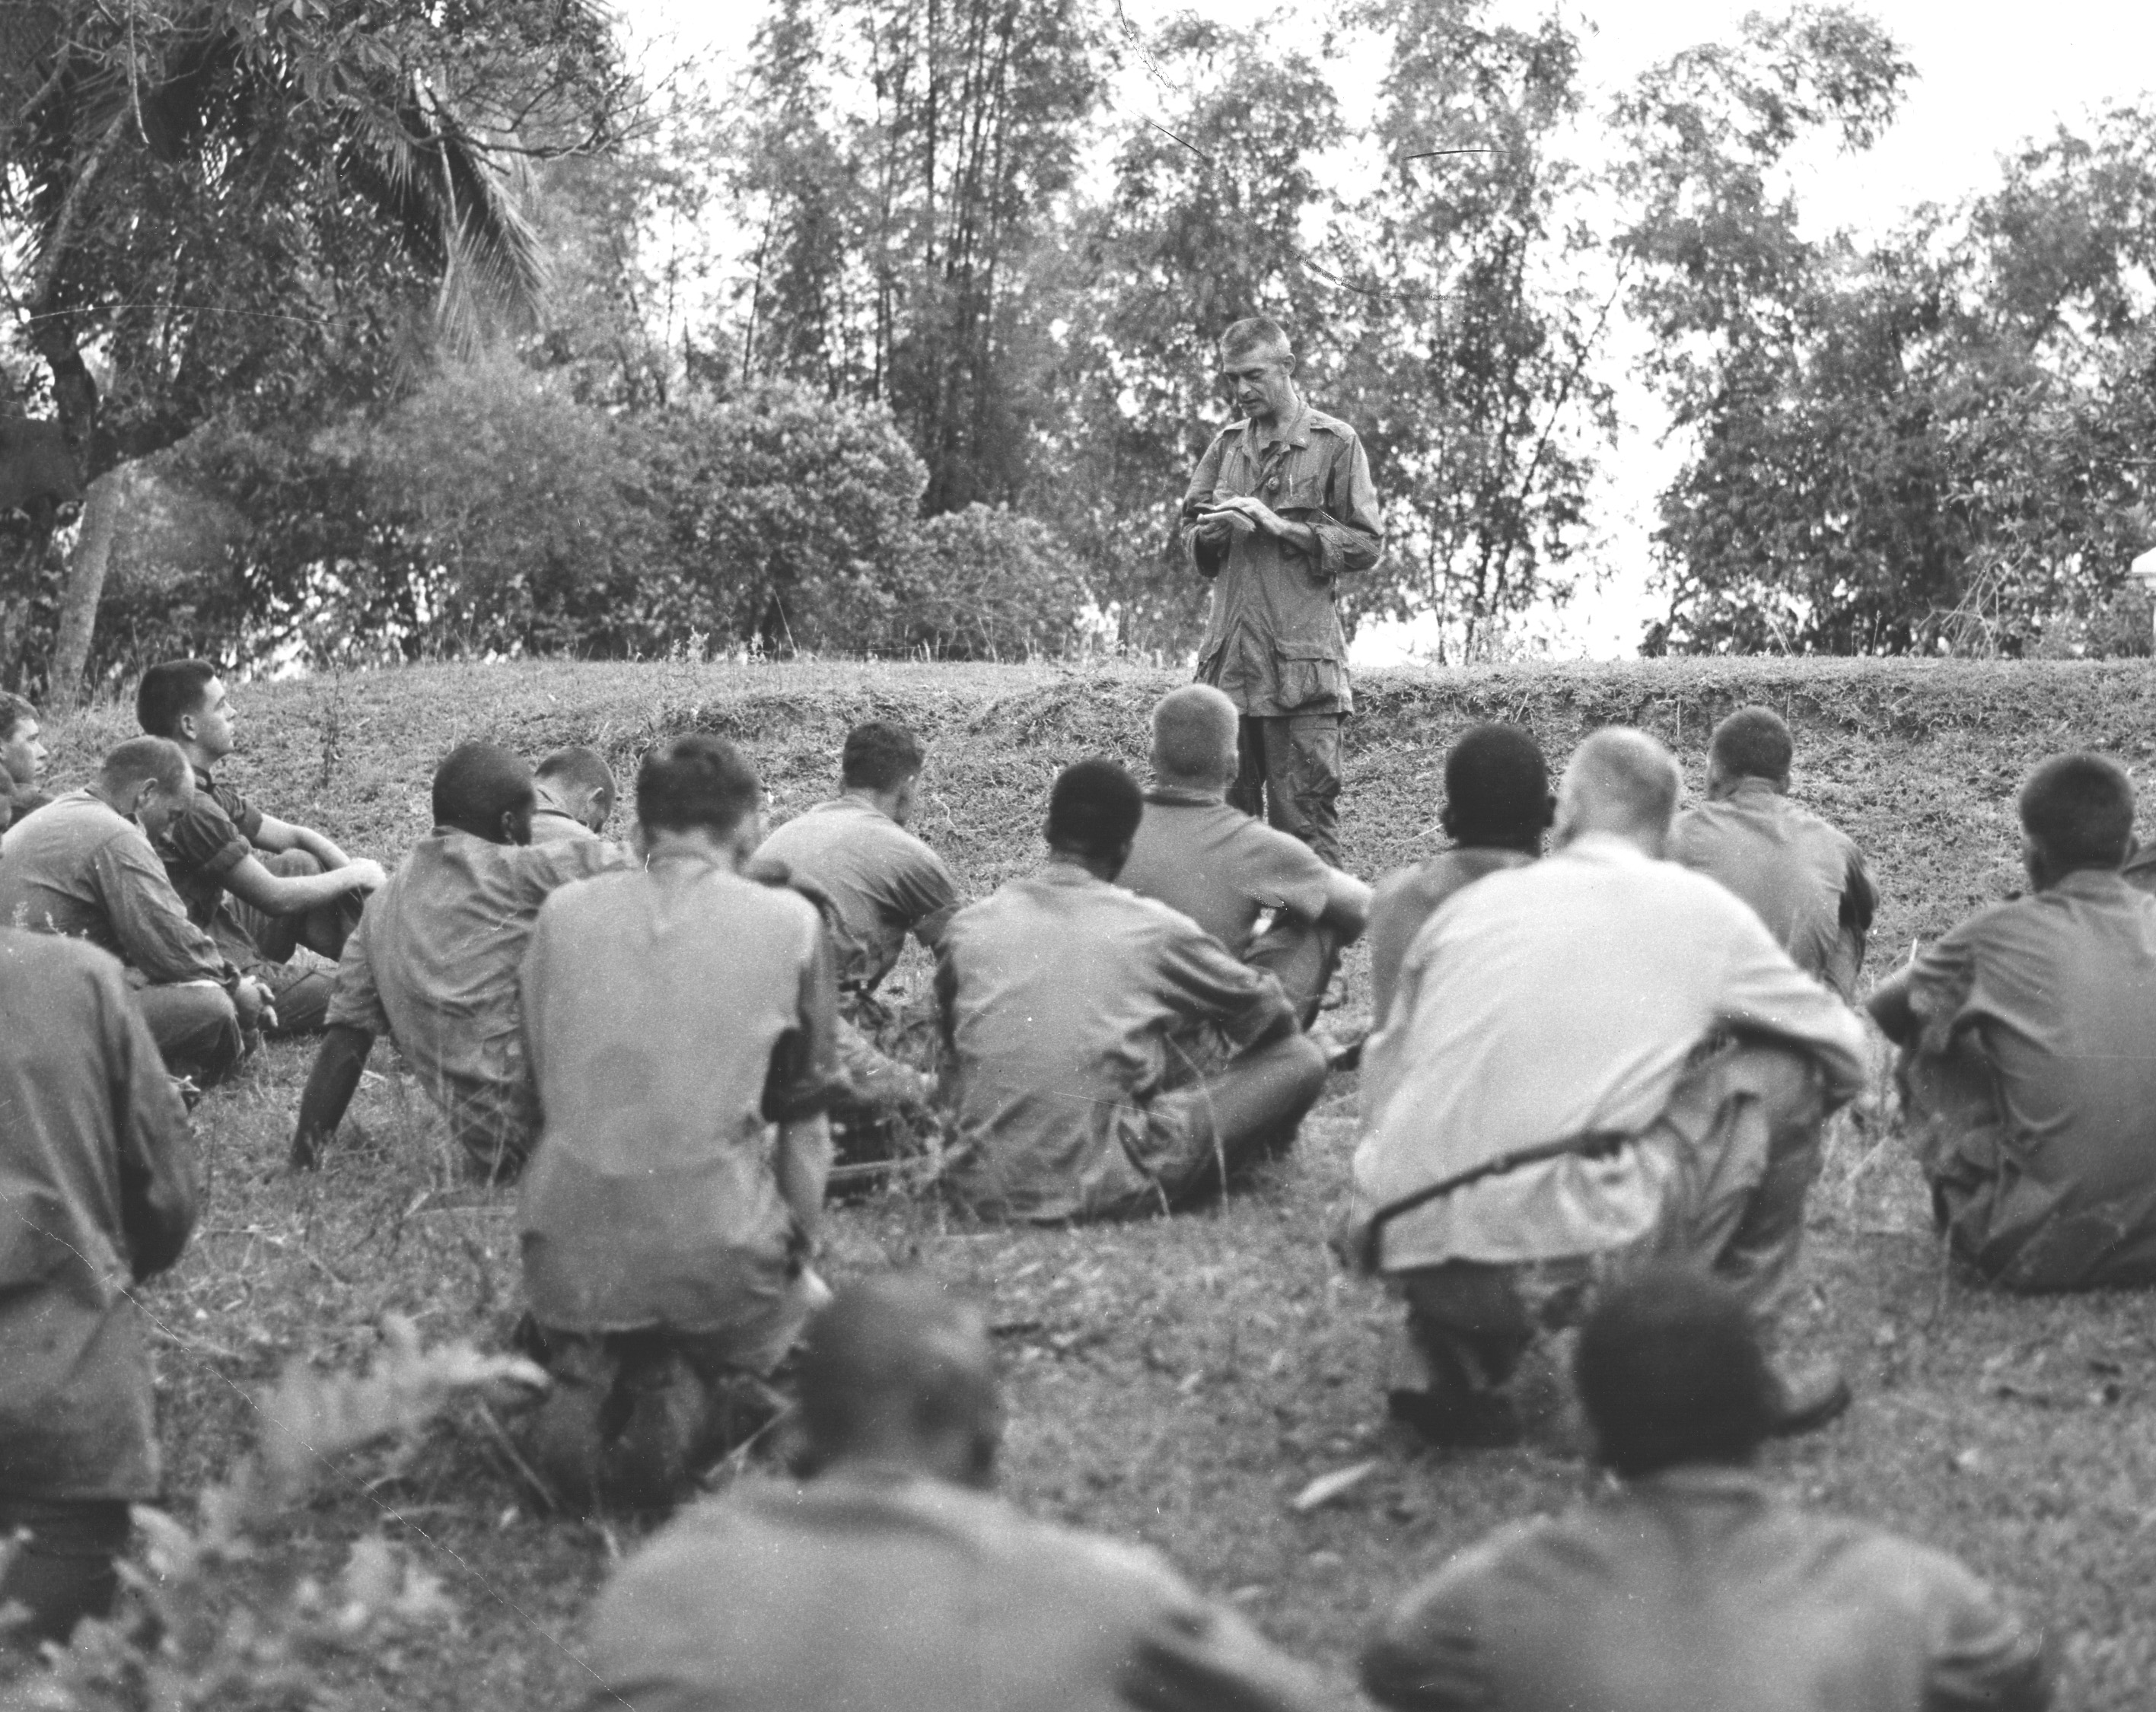 Capodanno leading prayer for Marines of the 1st Battalion, 7th Marines in the Muo Douc area